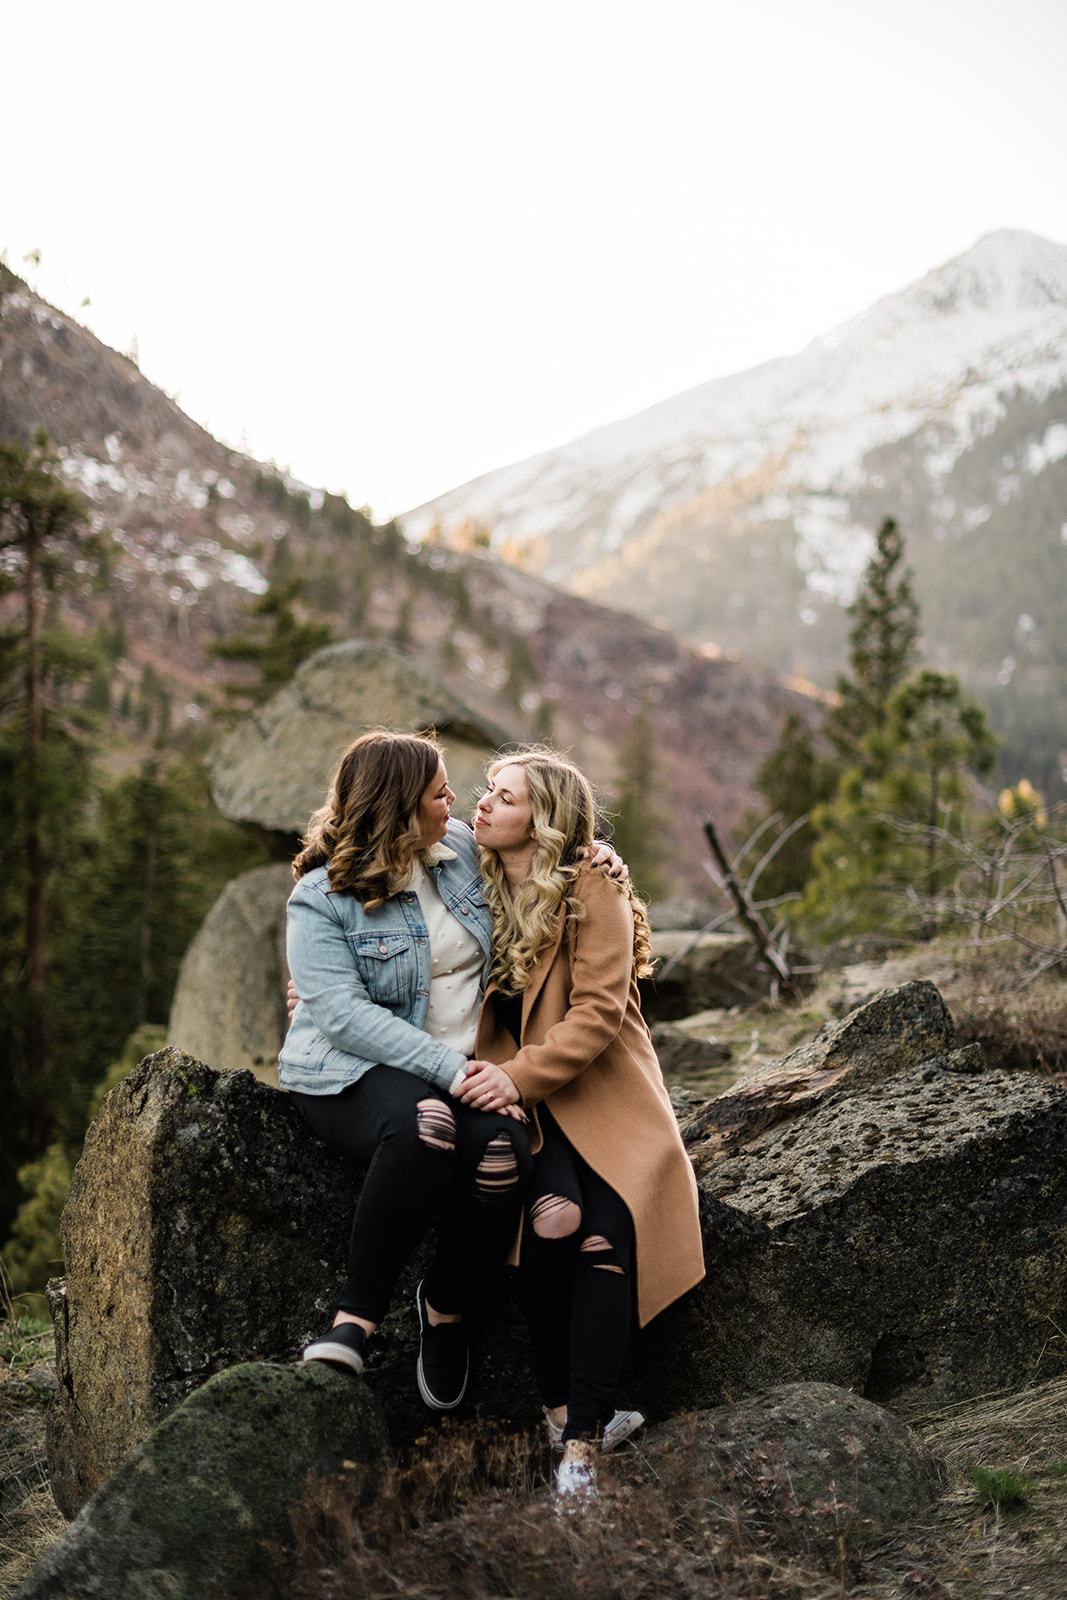 Adventure Mountain Leavenworth Engagement Session - Courtney and Taylor. Forthright Photo - Seattle Wedding & Elopement Adventure Photographers